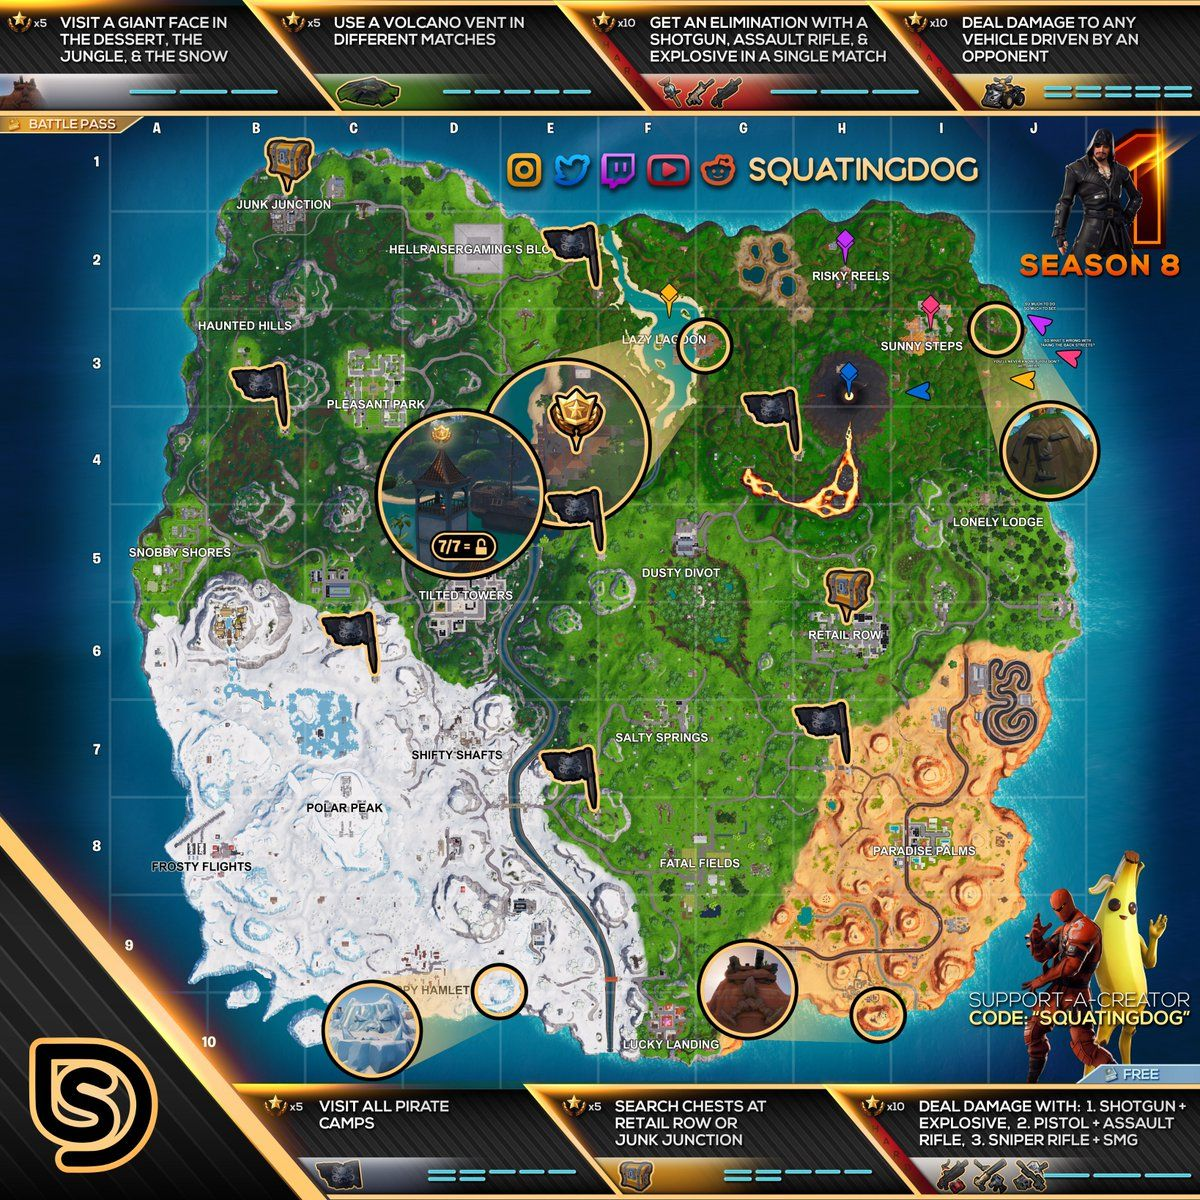 complete cheat sheet with all fortnite season 8 week 1 challenge locations want help completing all the season 8 week 1 fortnite challenges - mapa piezas rompecabezas fortnite